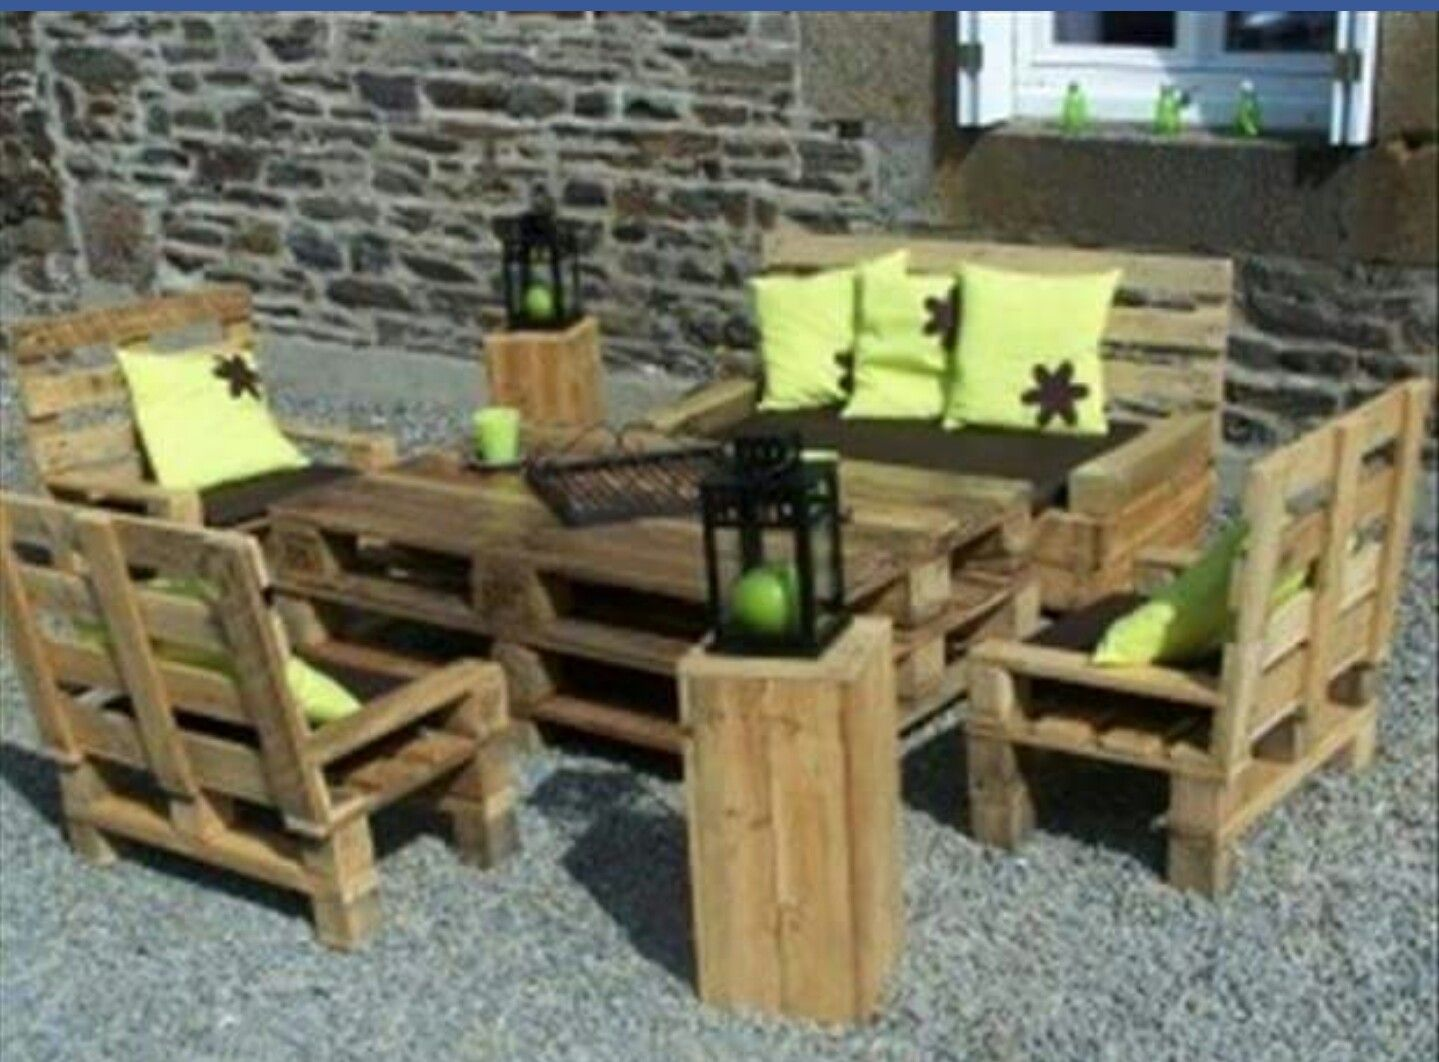 Outdoor seating with chairs. Pallets